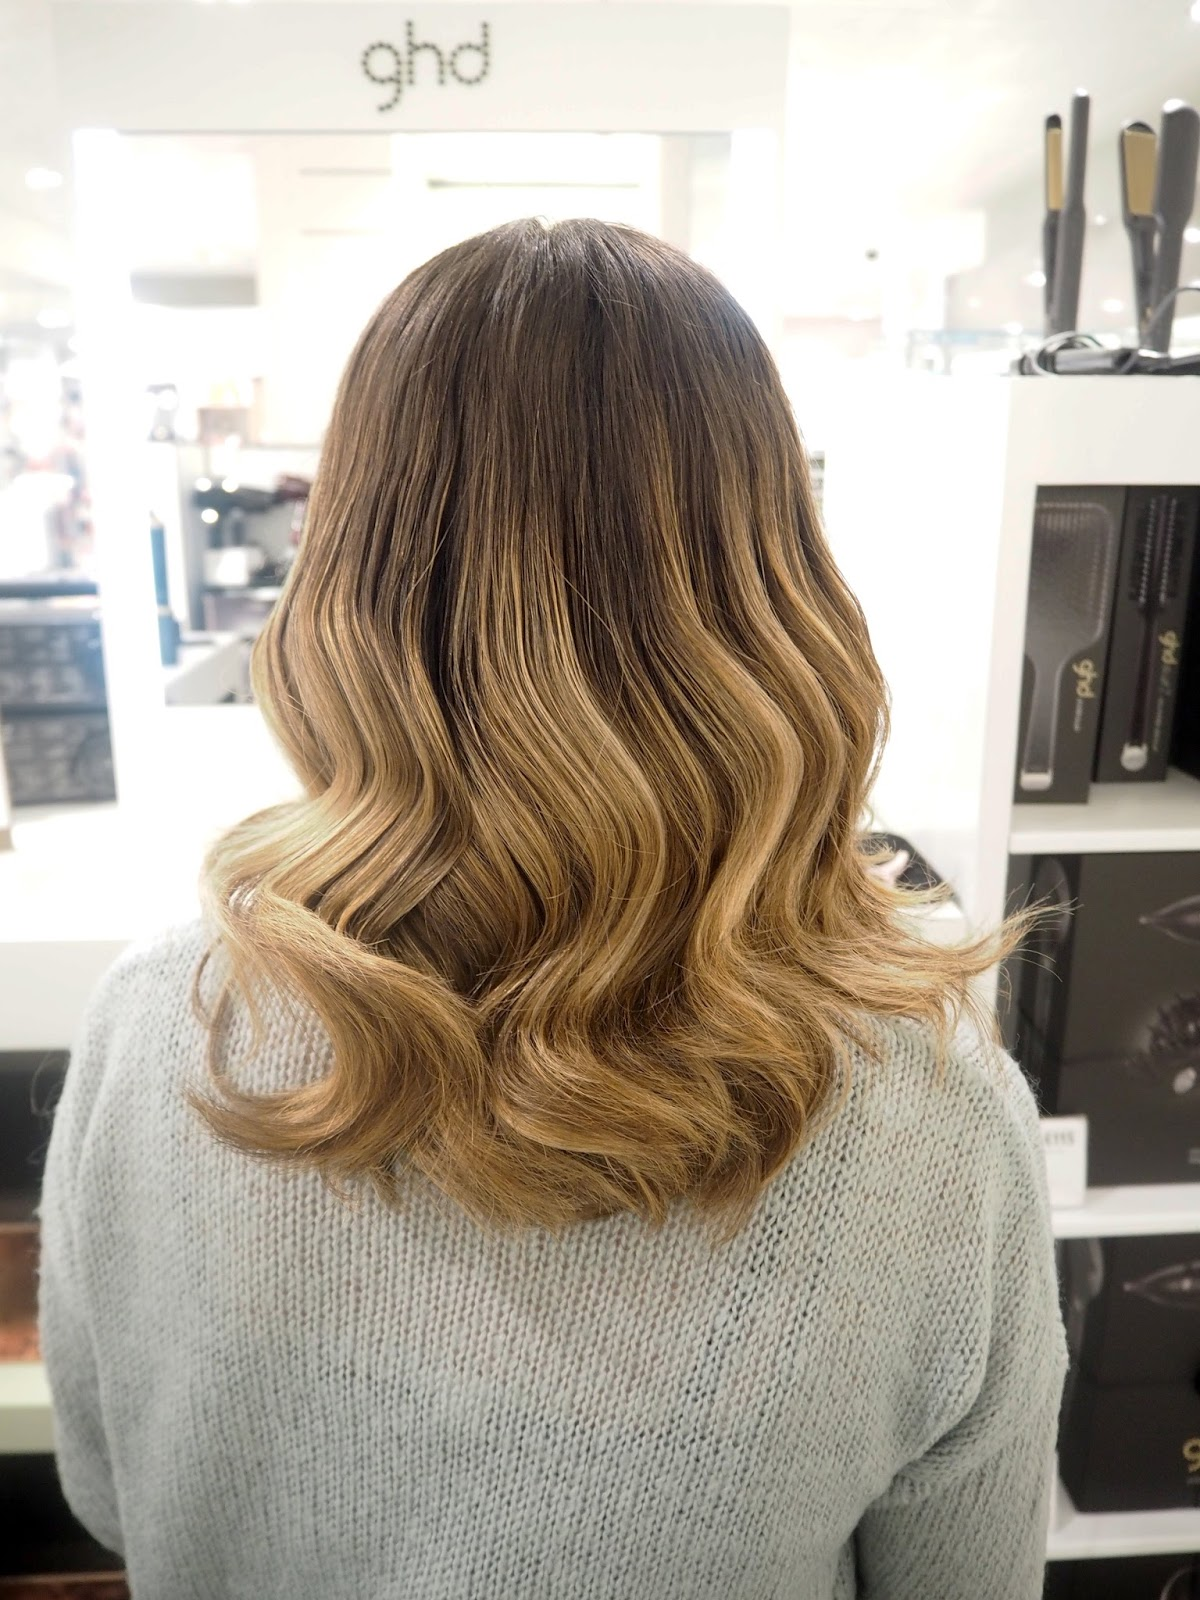 Beauty: A GHD Masterclass at John Lewis, Liverpool* | Hollie in Wanderlust